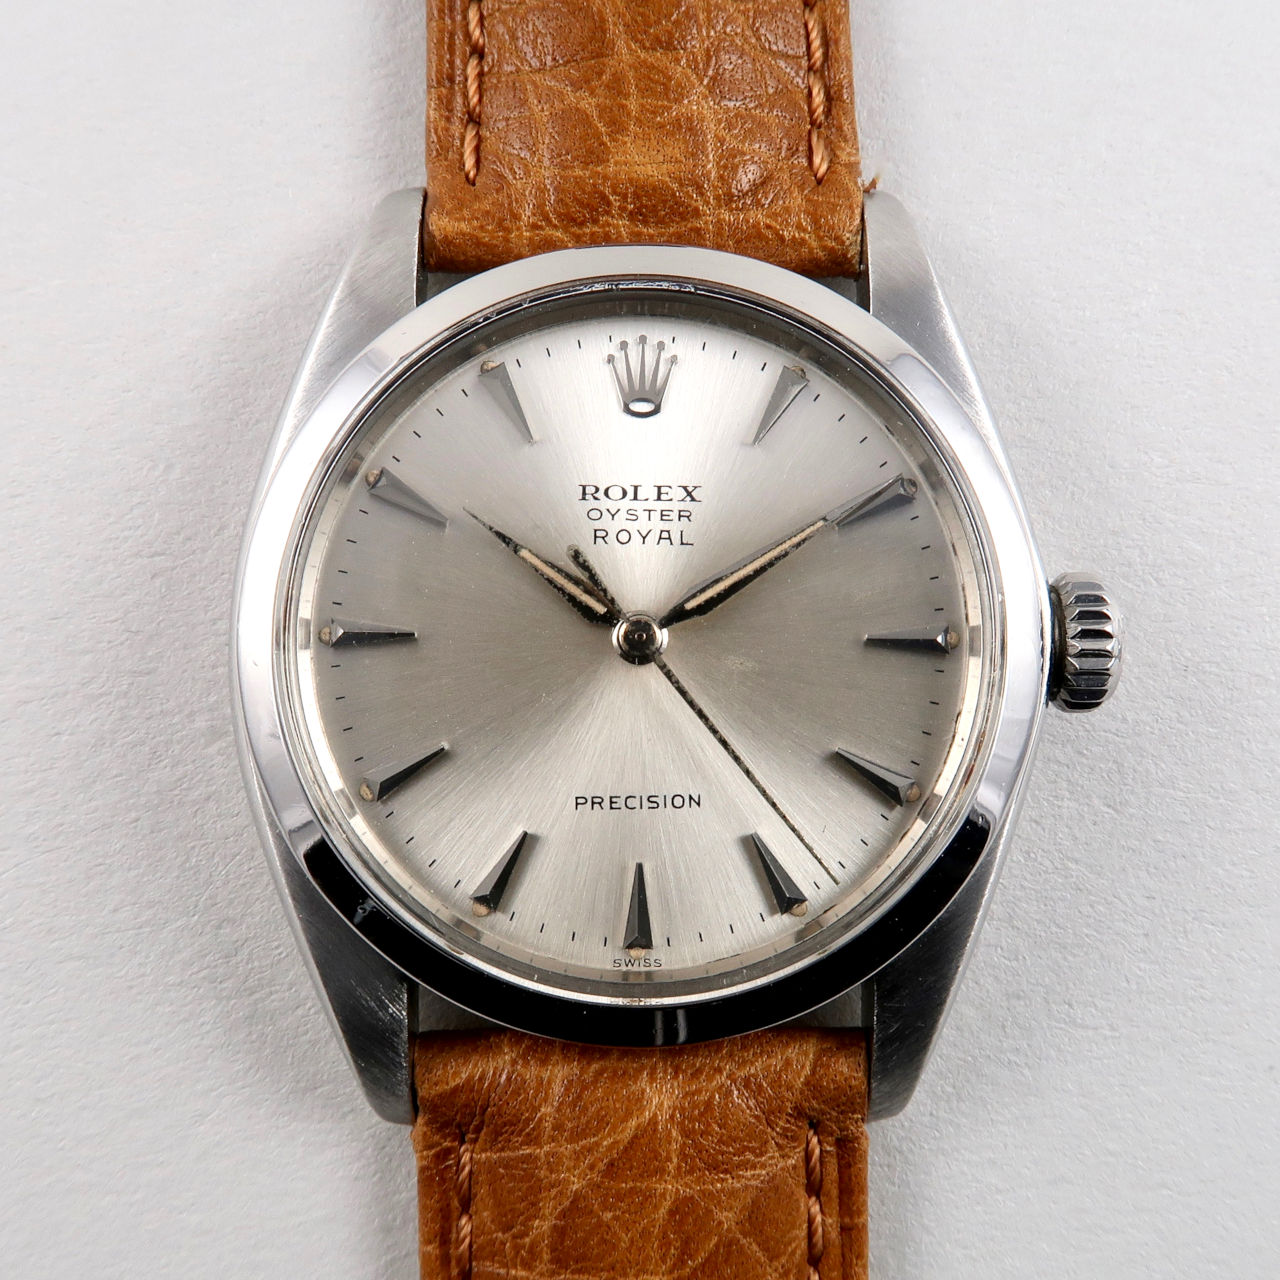 rolex-oyster-royal-ref-6426-dated-1963